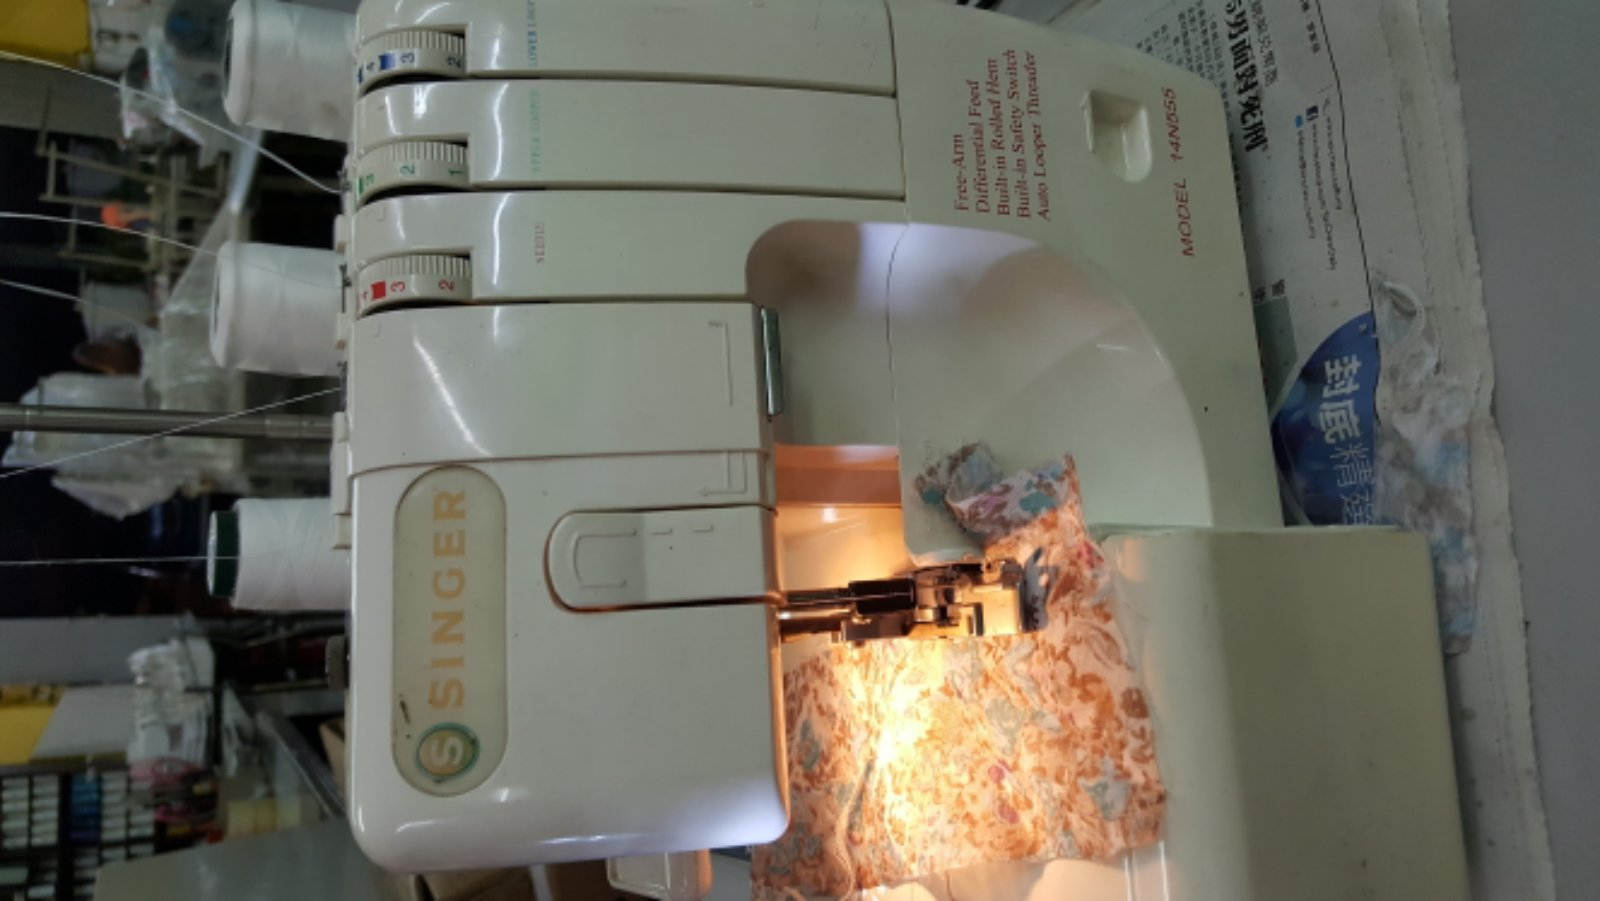 Service Singer Portable Overlock Sewing Machine!